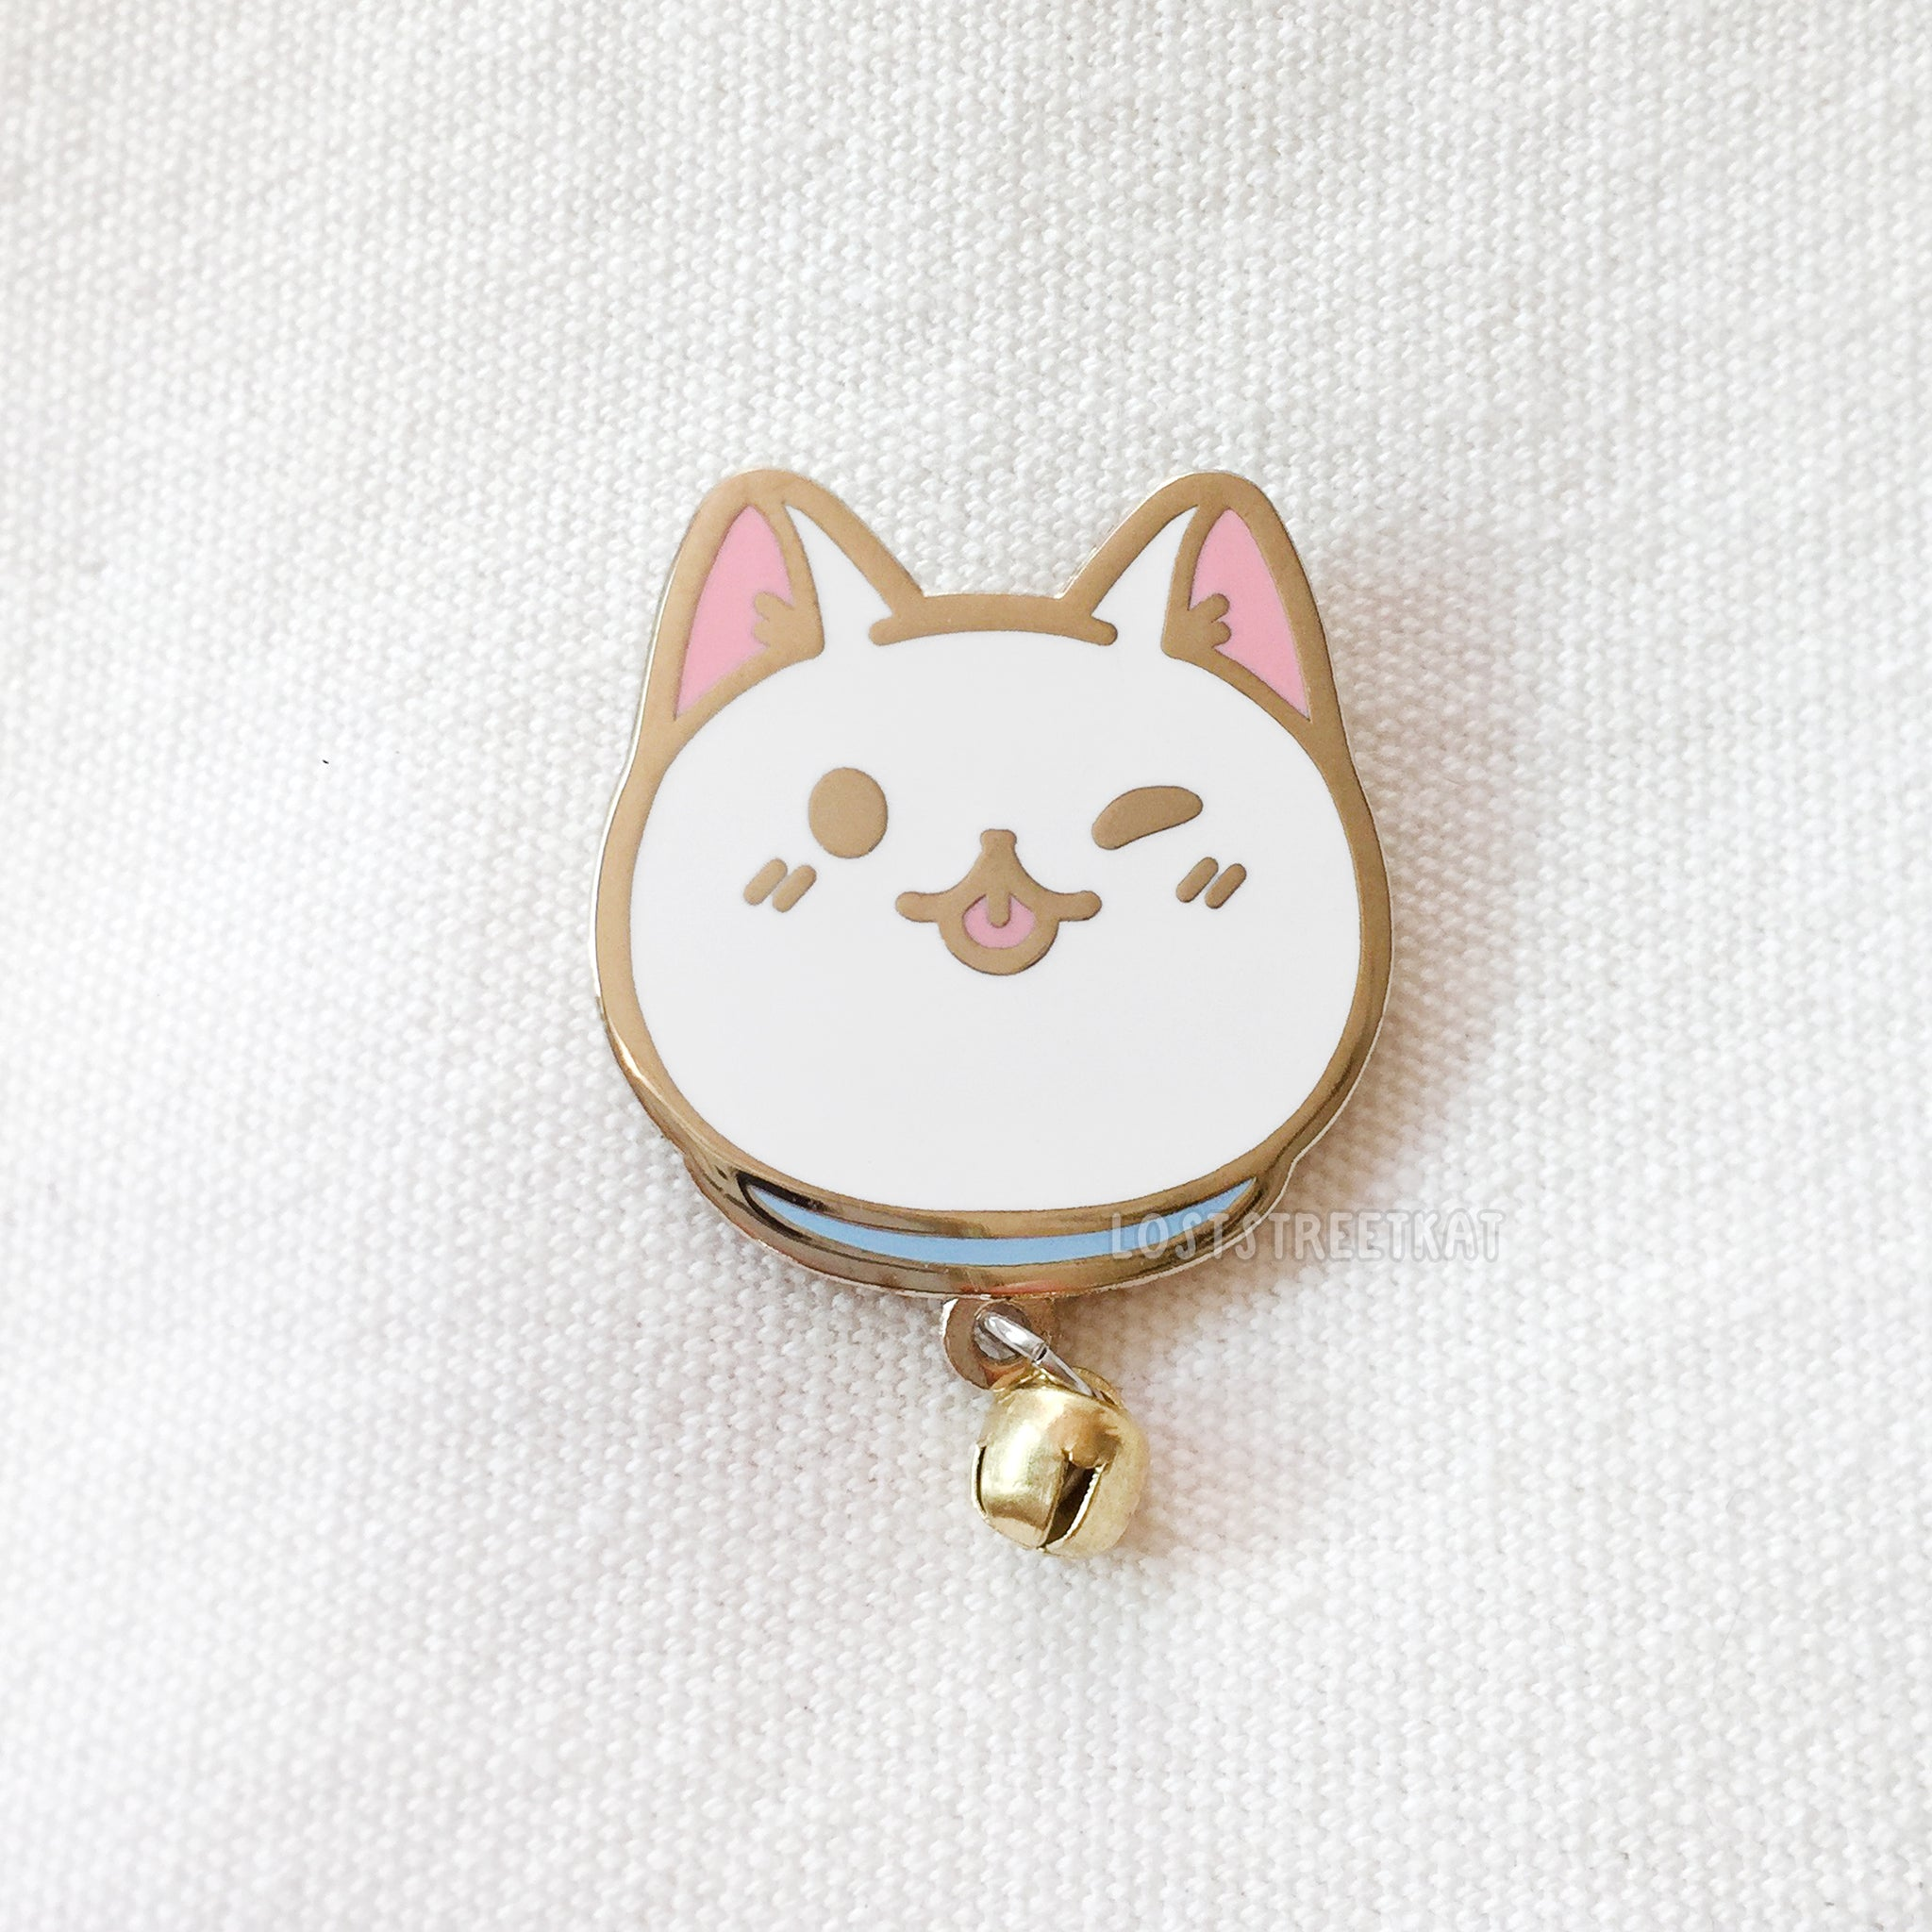 White Cat Enamel Pin With Bell- loststreetkat